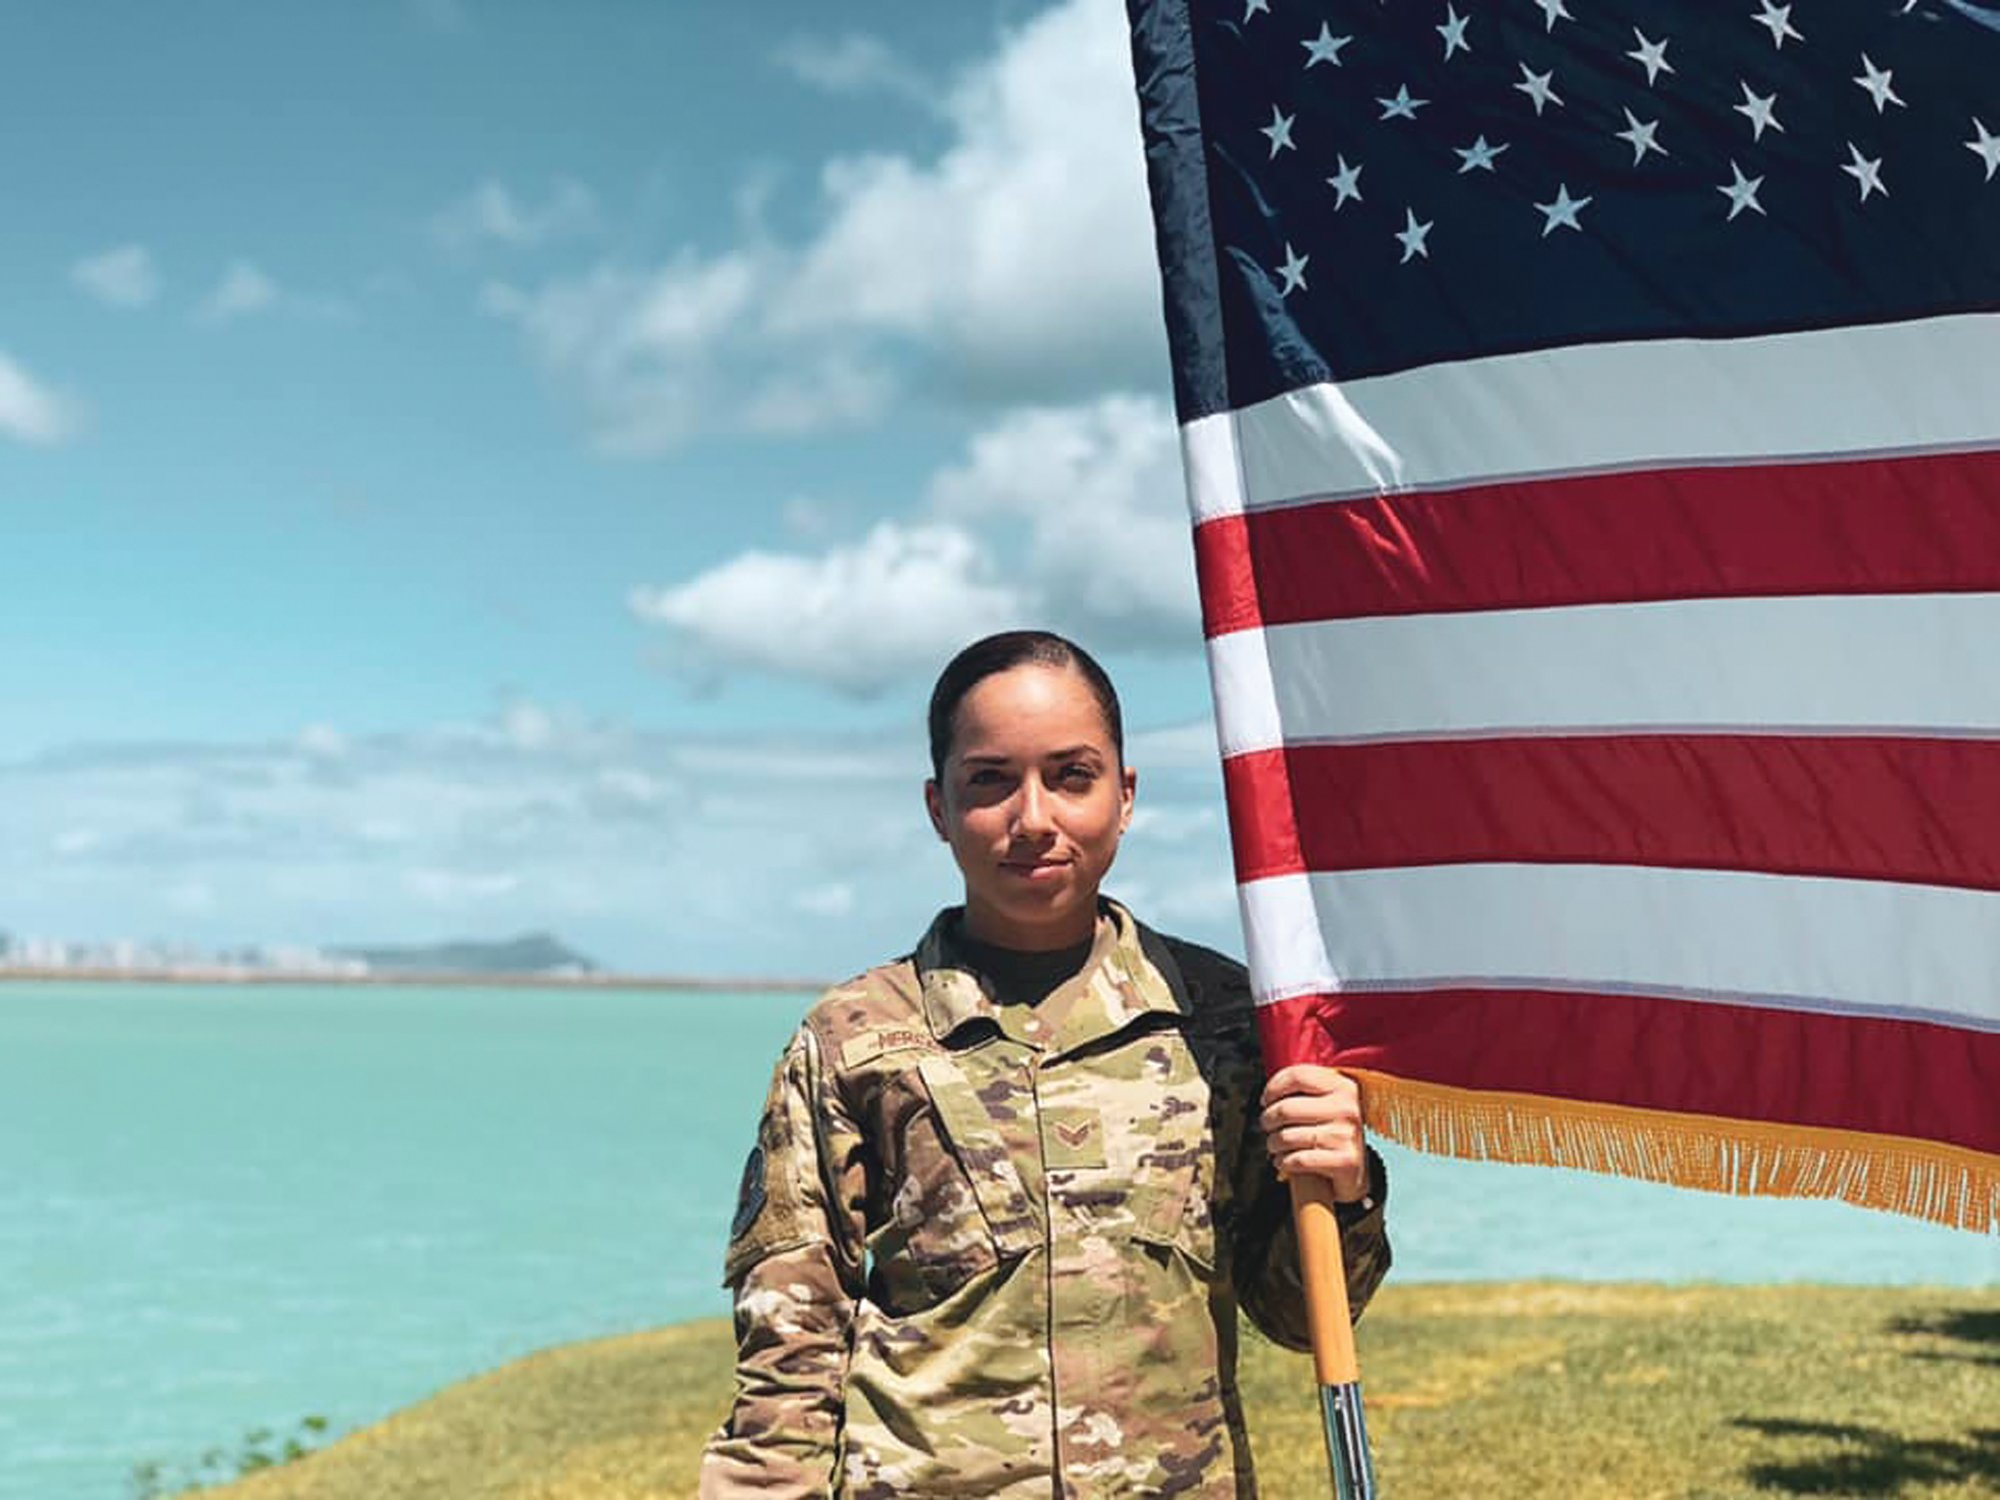 In this June 2019 photo, U.S. Air Force Senior Airman Xiara Mercado stands at Pearl Harbor, Hawaii. A Facebook post by Mercado, of Puerto Rico, drew wide attention when she described a recent encounter at a Honolulu Starbucks with a woman who complained about her talking in Spanish on the phone. Mercado wouldn't comment on recent anti-Latino violence that has terrified many Hispanics but insisted people should speak up when they suffer discrimination.